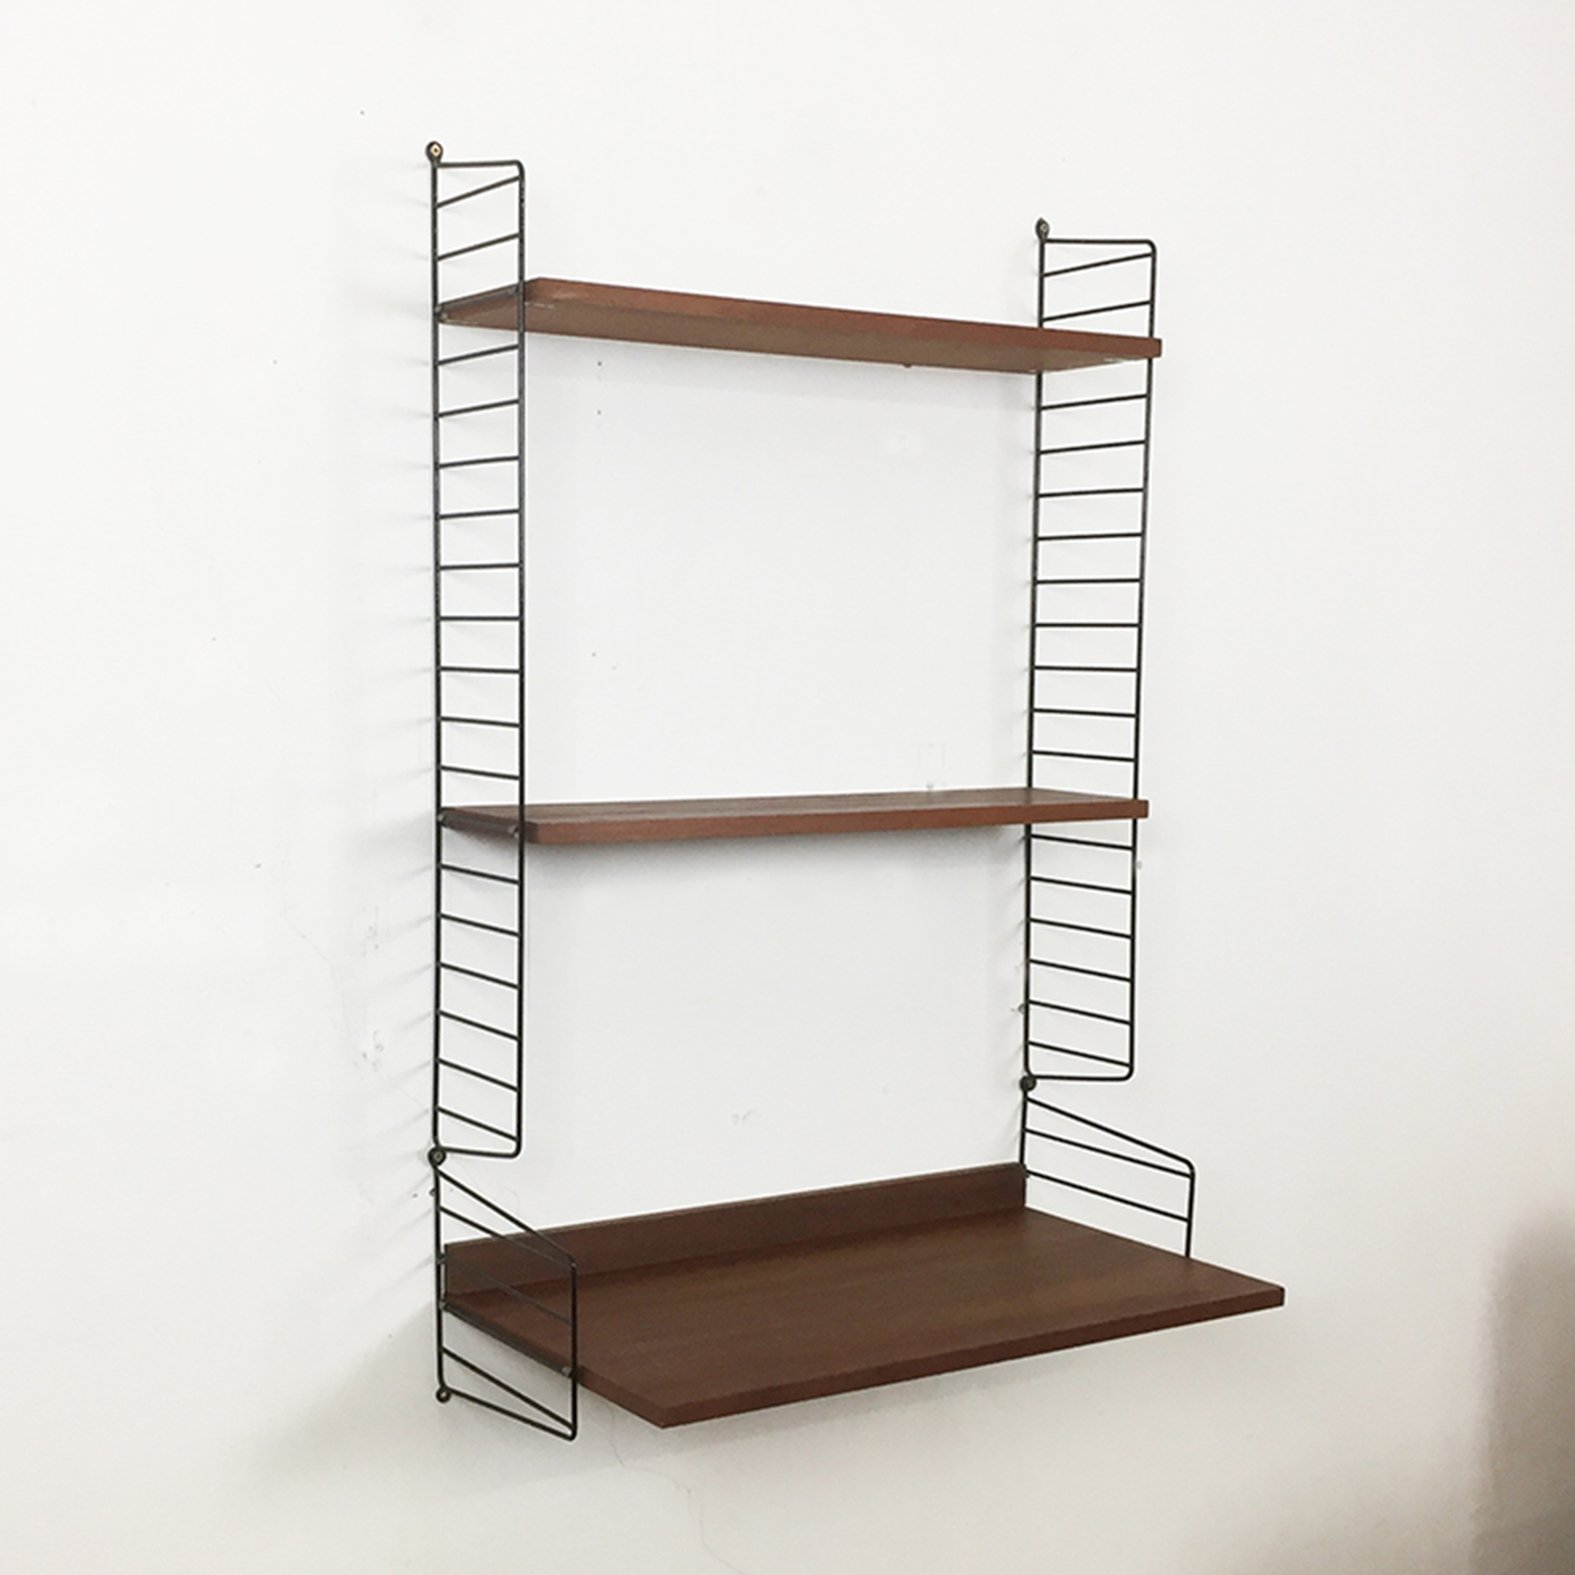 Teak Wood Wall Unit From The Sixties By Nisse Strinning